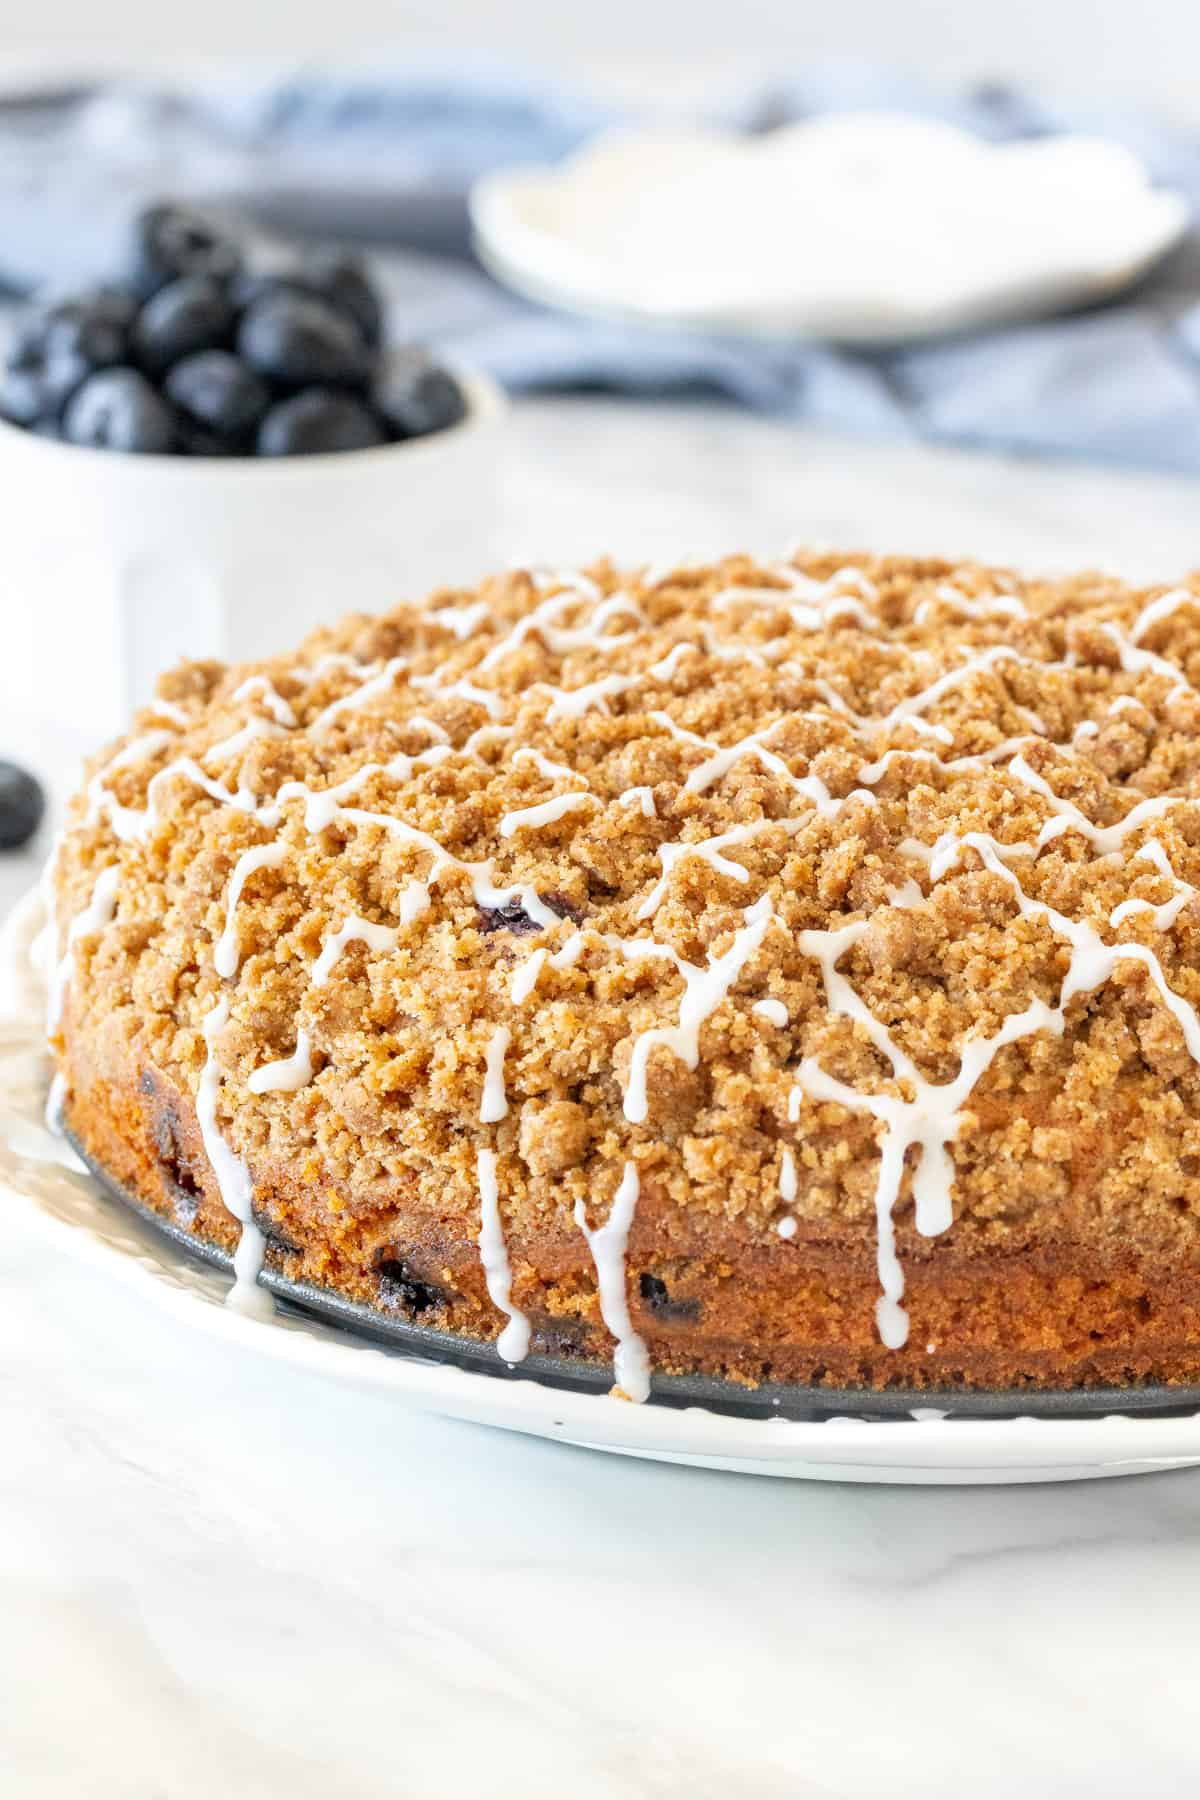 Blueberry coffee cake with streusel topping and a drizzle of glaze